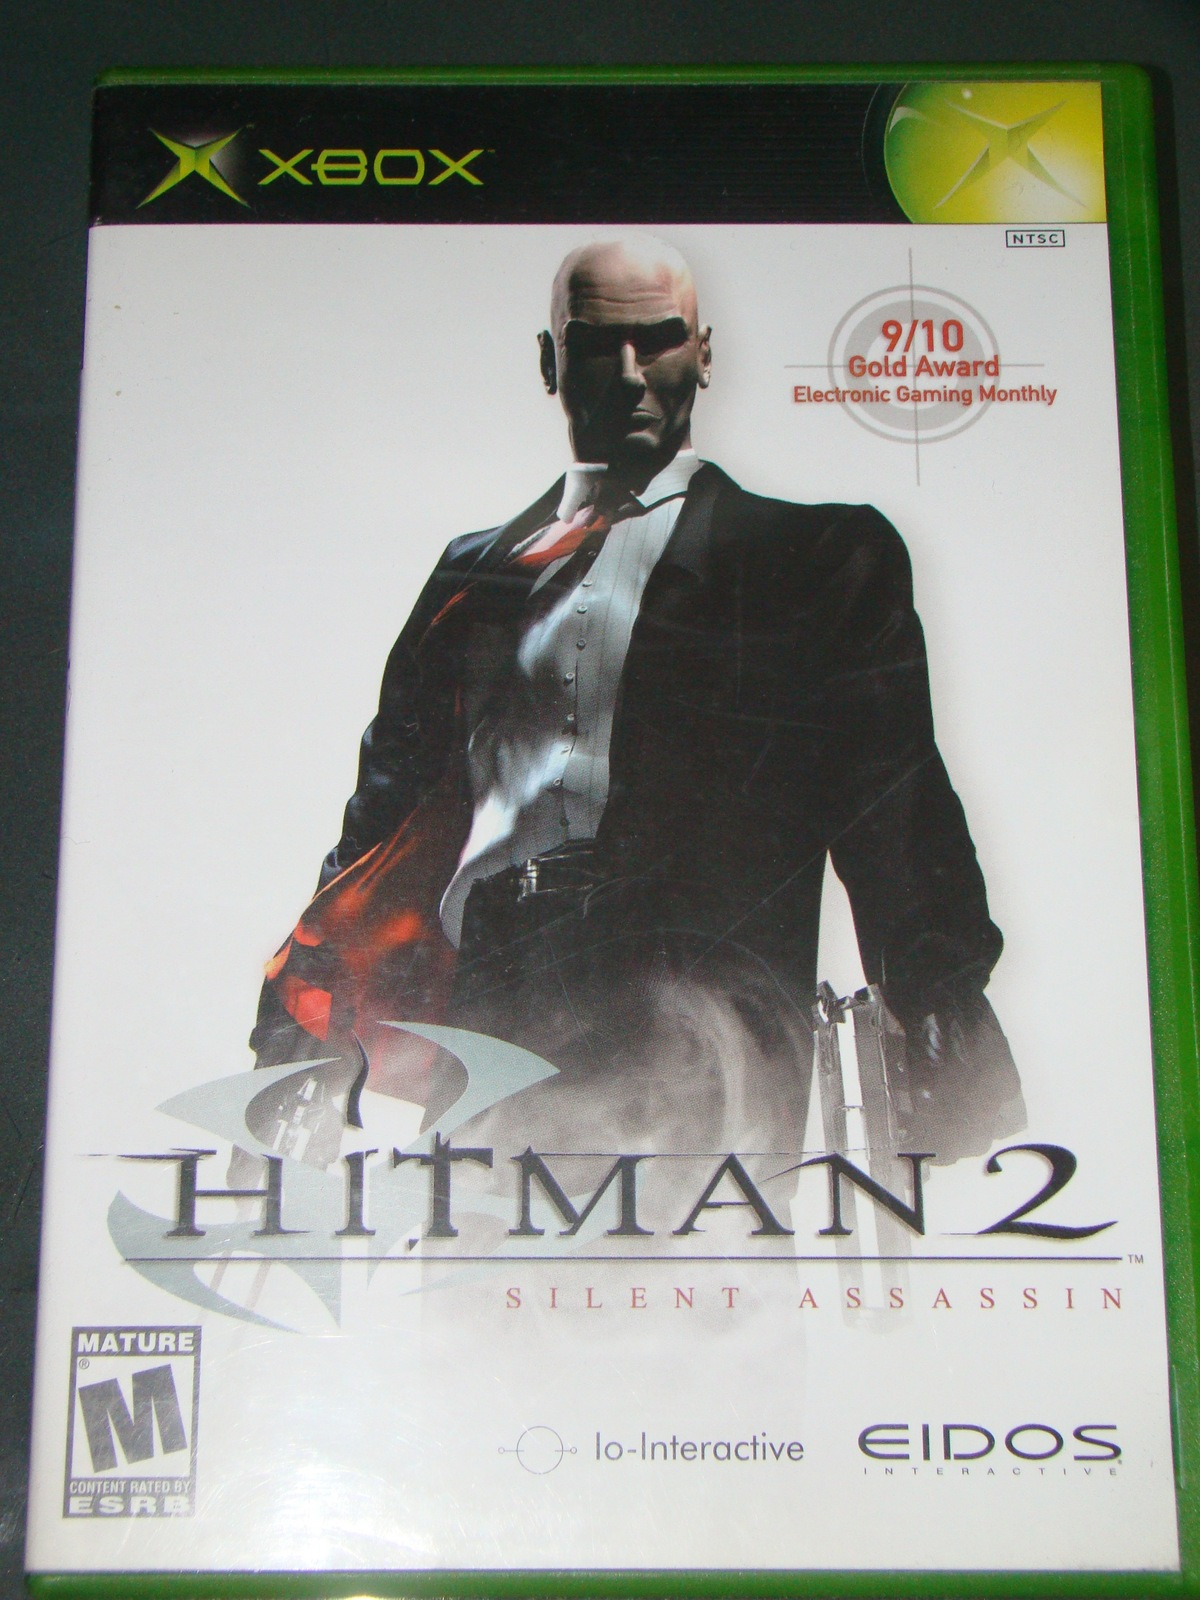 XBOX - HIT MAN 2 - SILENT ASSASSIN (Complete with Instructions)